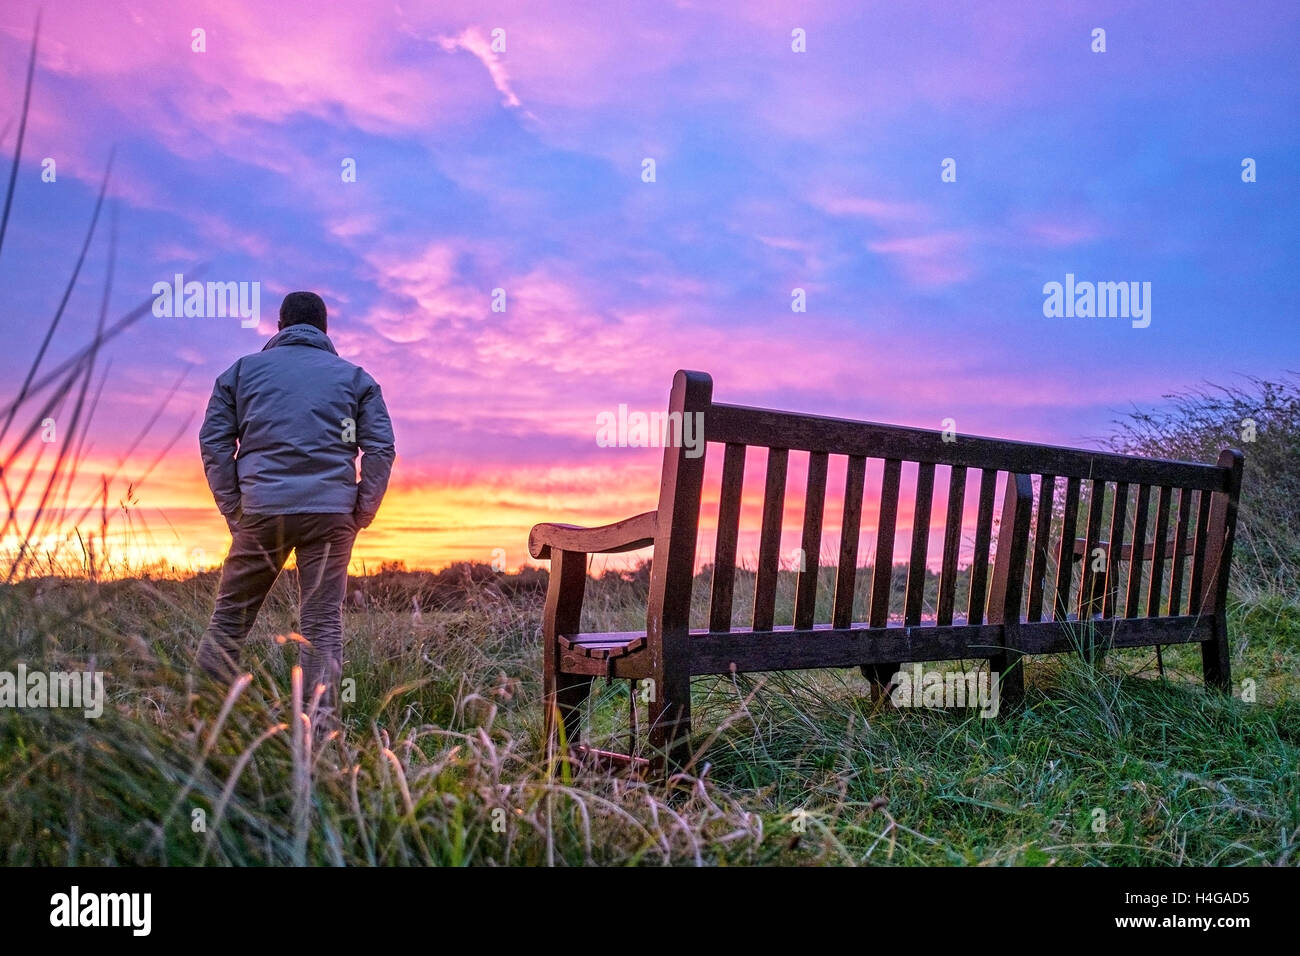 Southport, Merseyside, 16th October 2016.  After a cold and clear night, a beautiful sunrise breaks over the Marshside - Stock Image